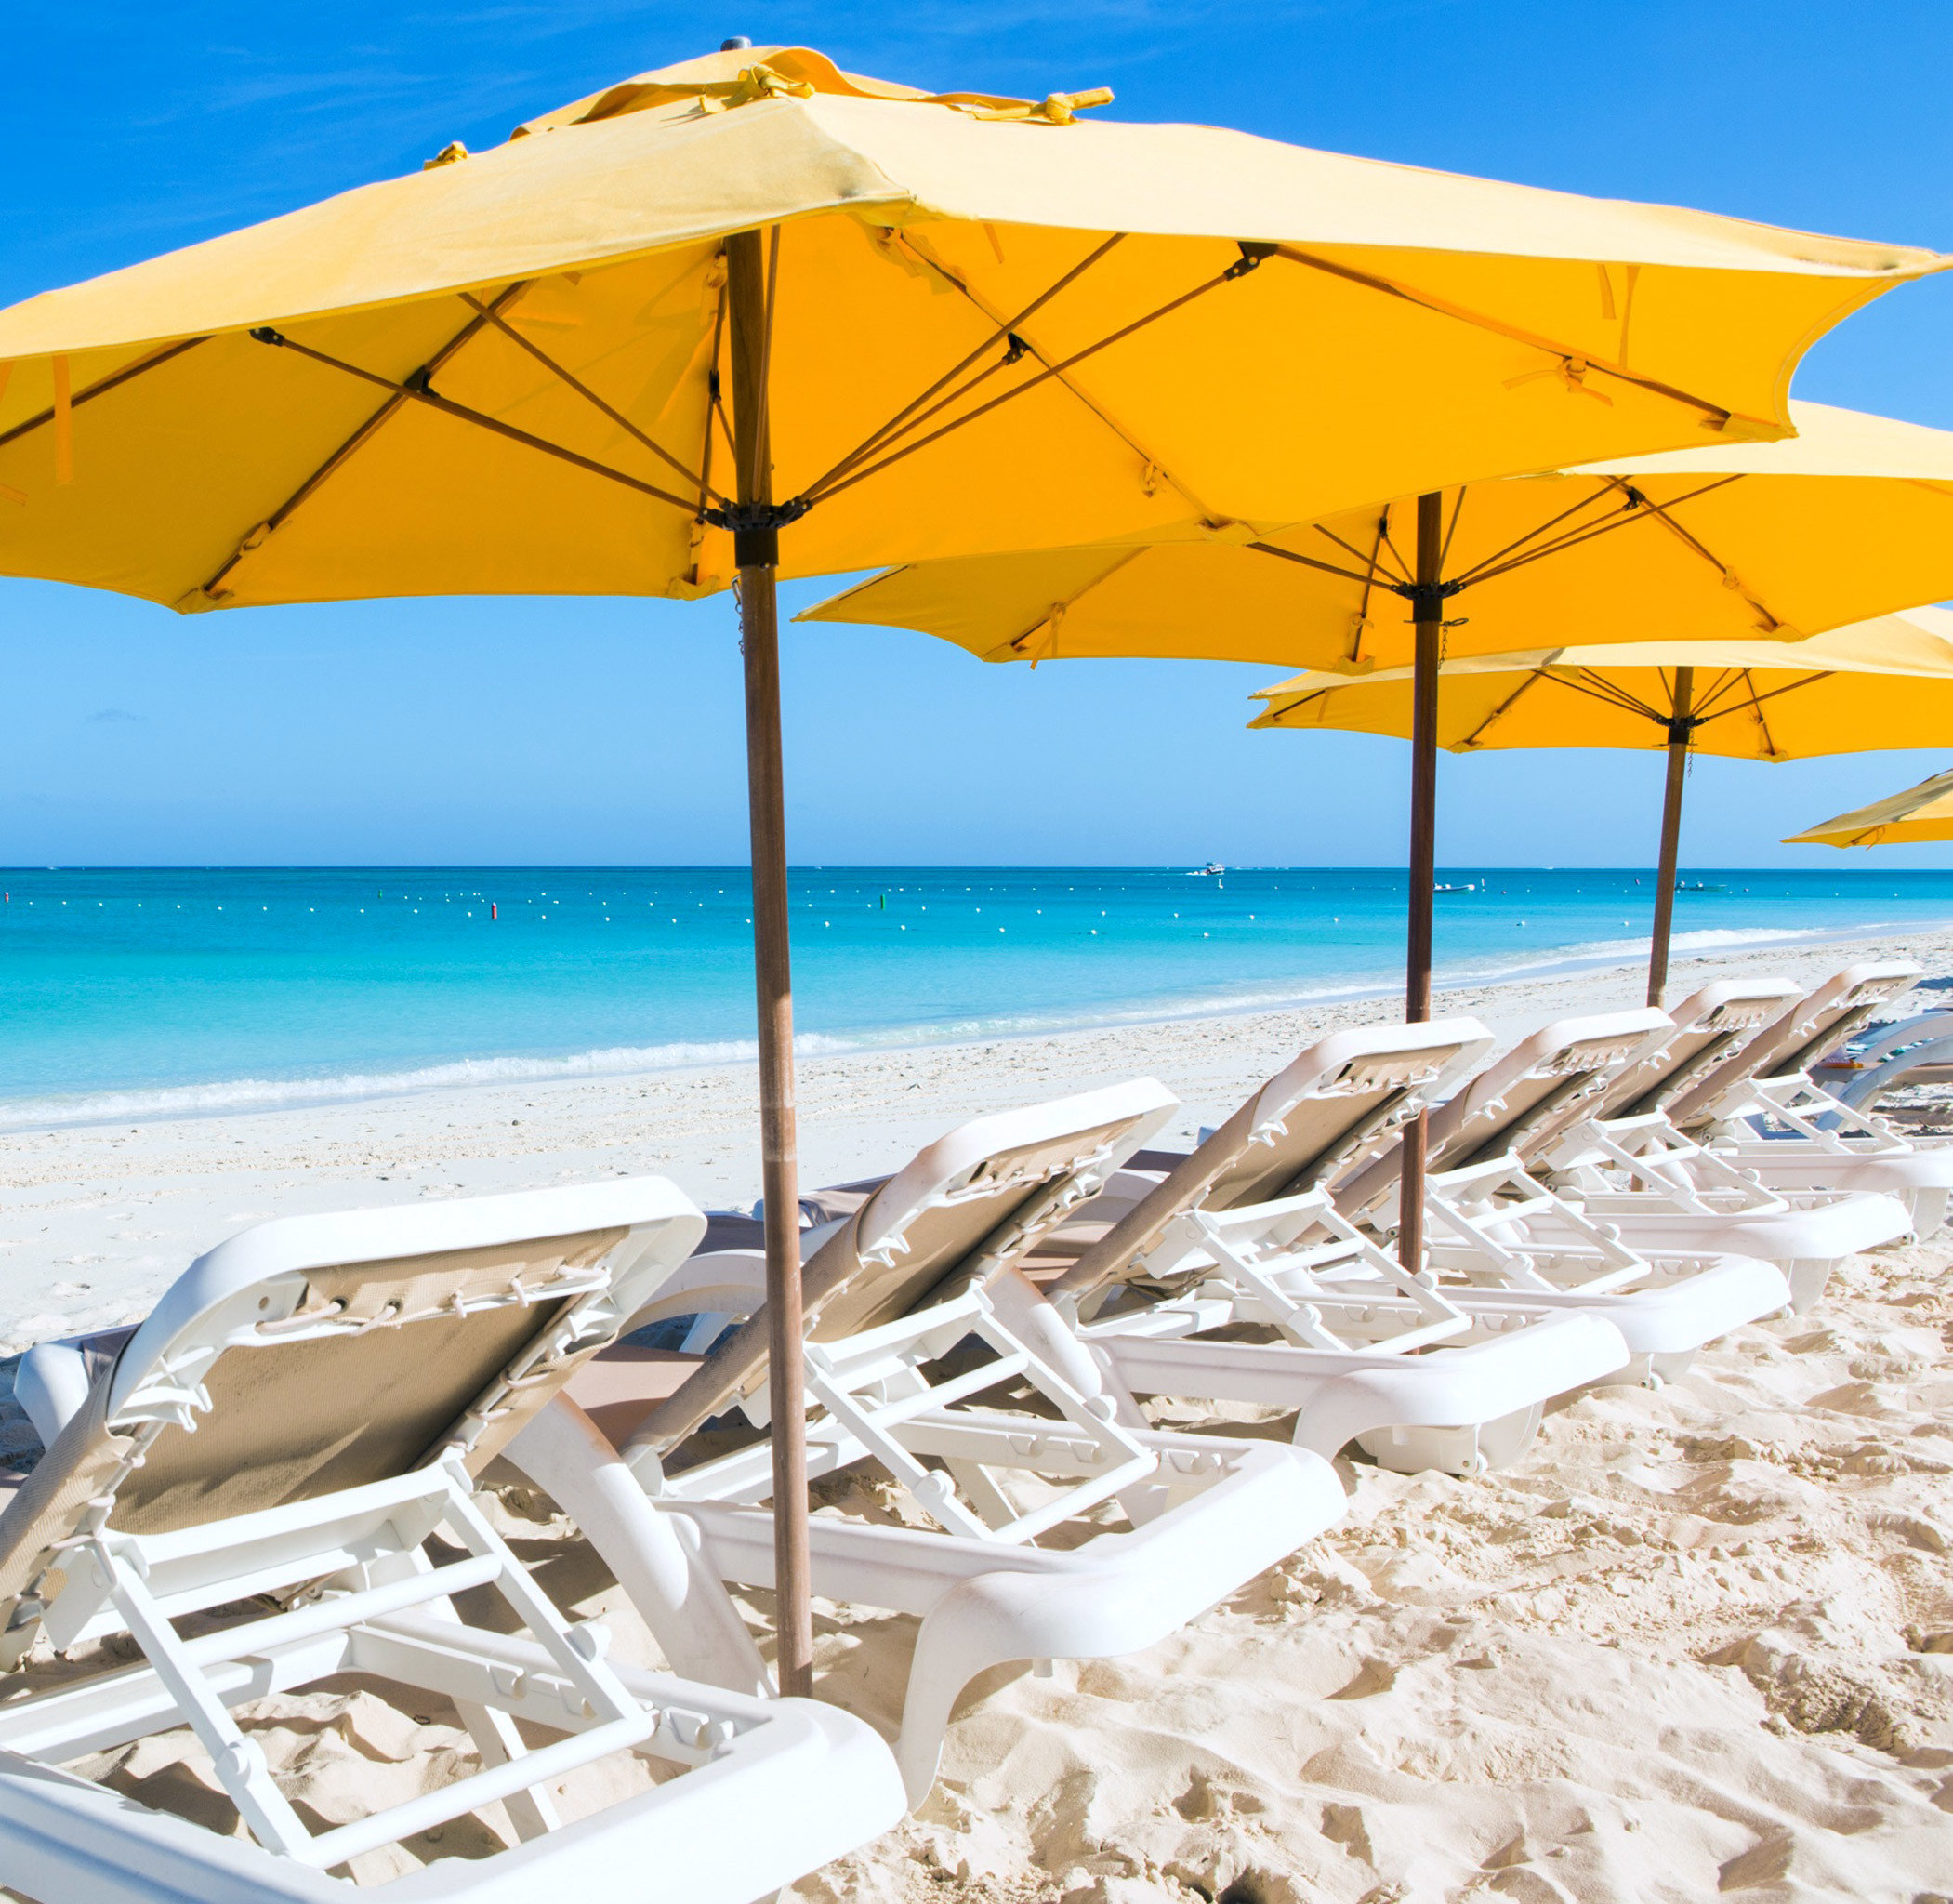 Beach Beachfront Grounds Hotels Play Resort Scenic views accessory sky umbrella outdoor chair shore Ocean Nature Sea caribbean Coast vacation